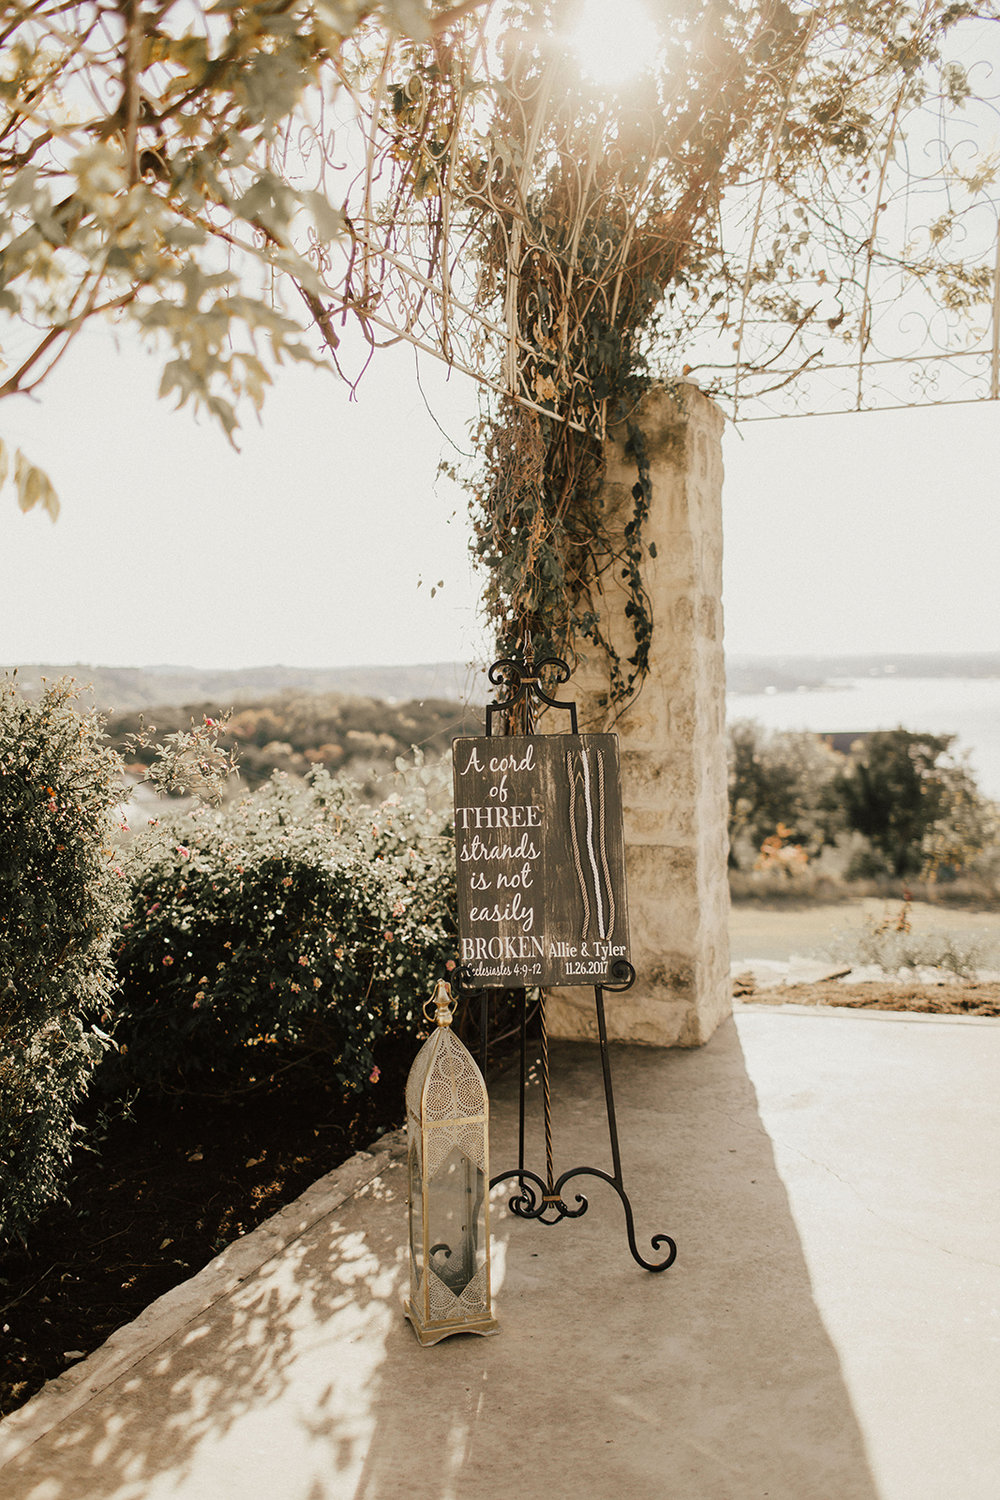 allie-tyler-vintage-villas-austin-texas-wedding-photographer-339.jpg